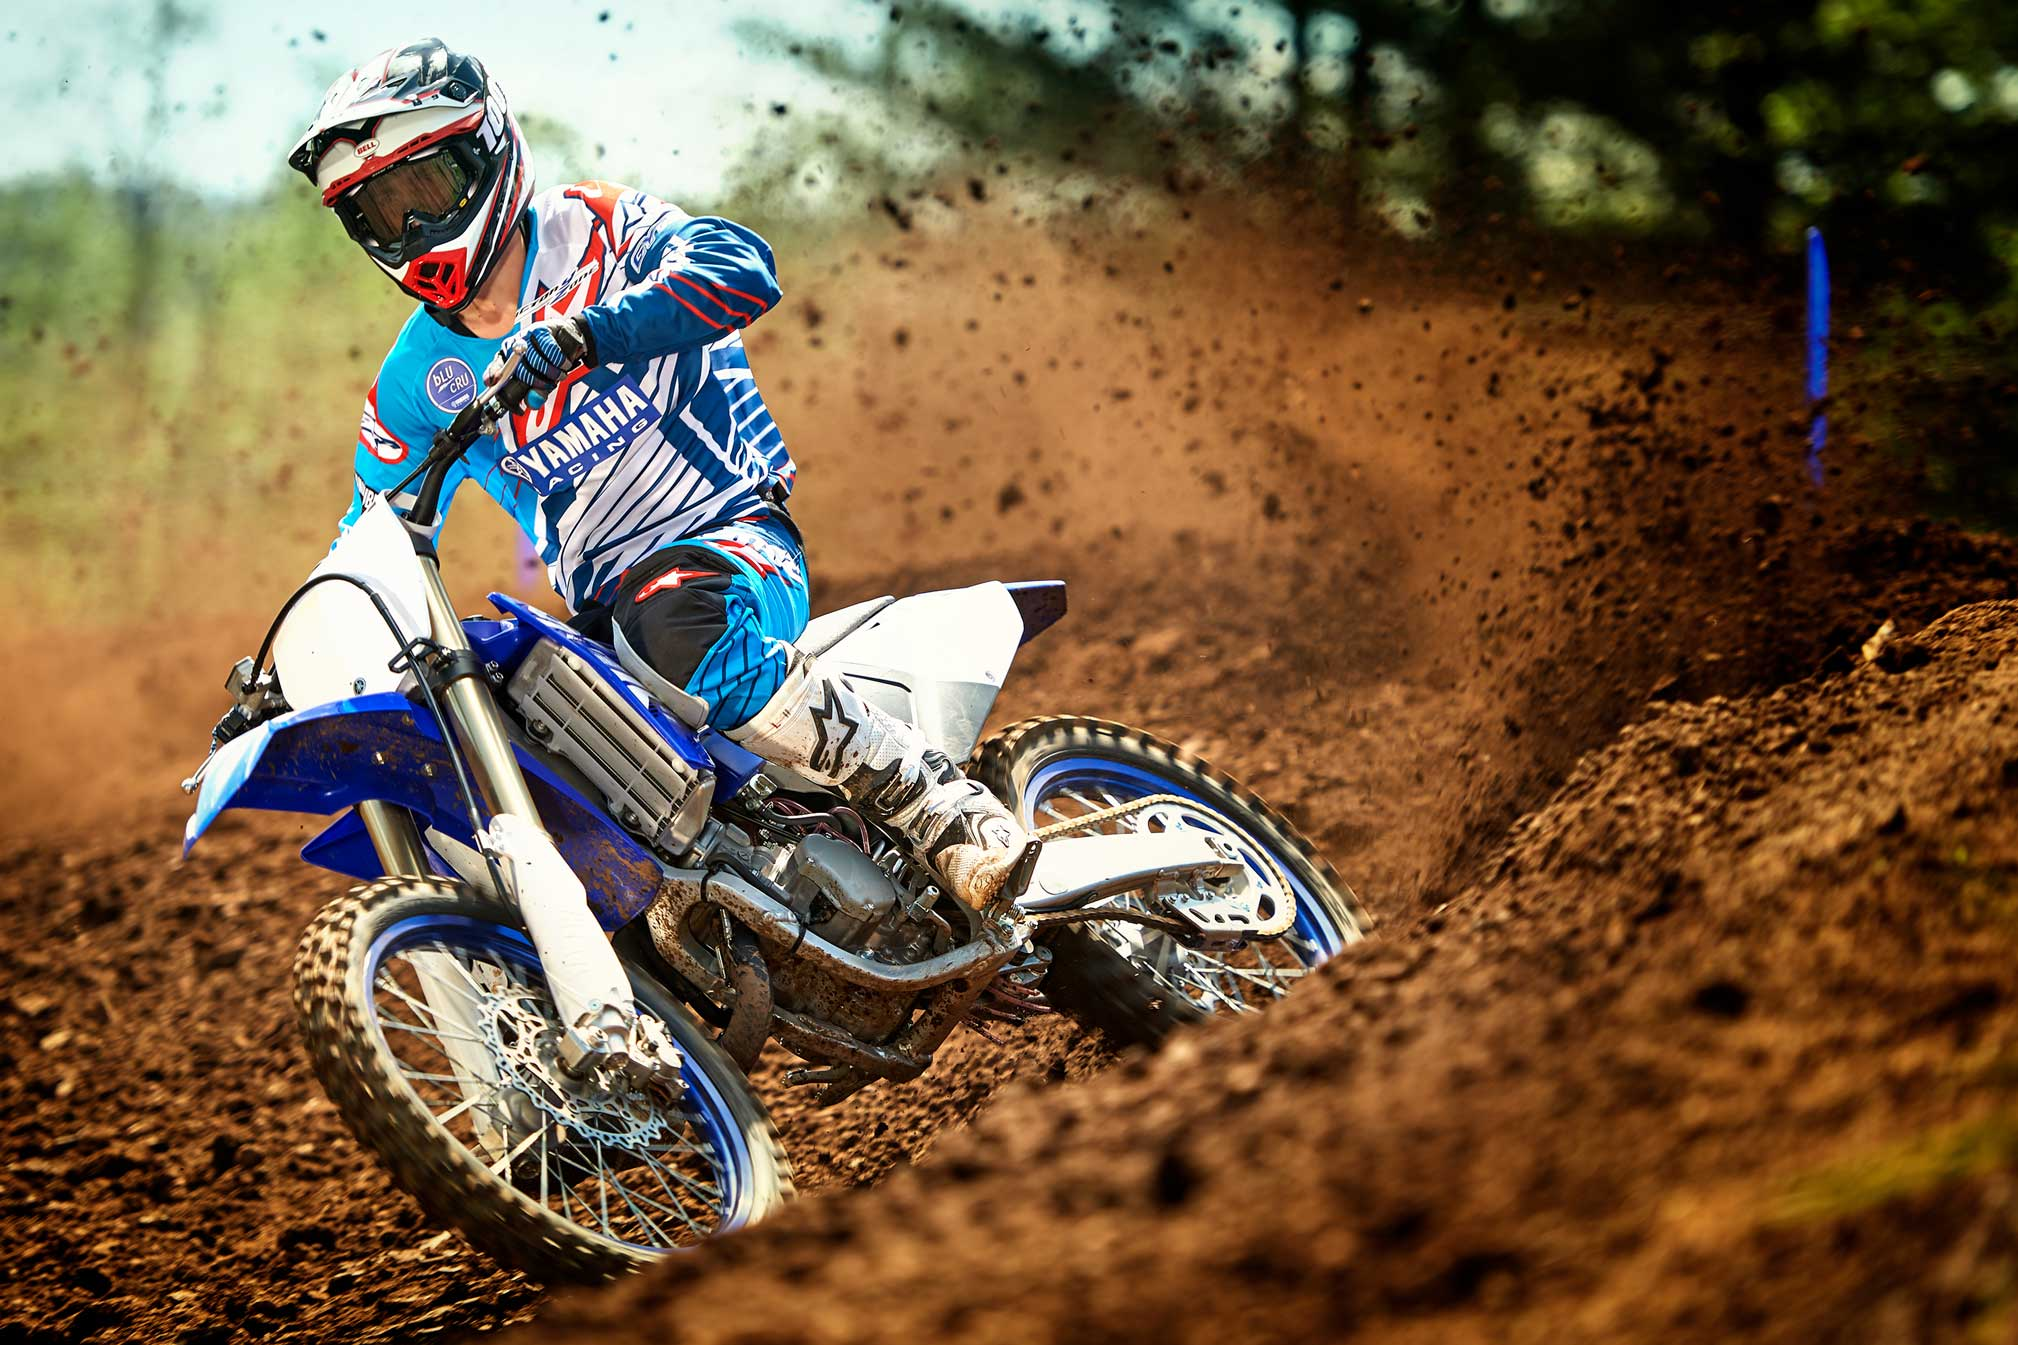 2018 Yamaha Yz125 Review Totalmotorcycle